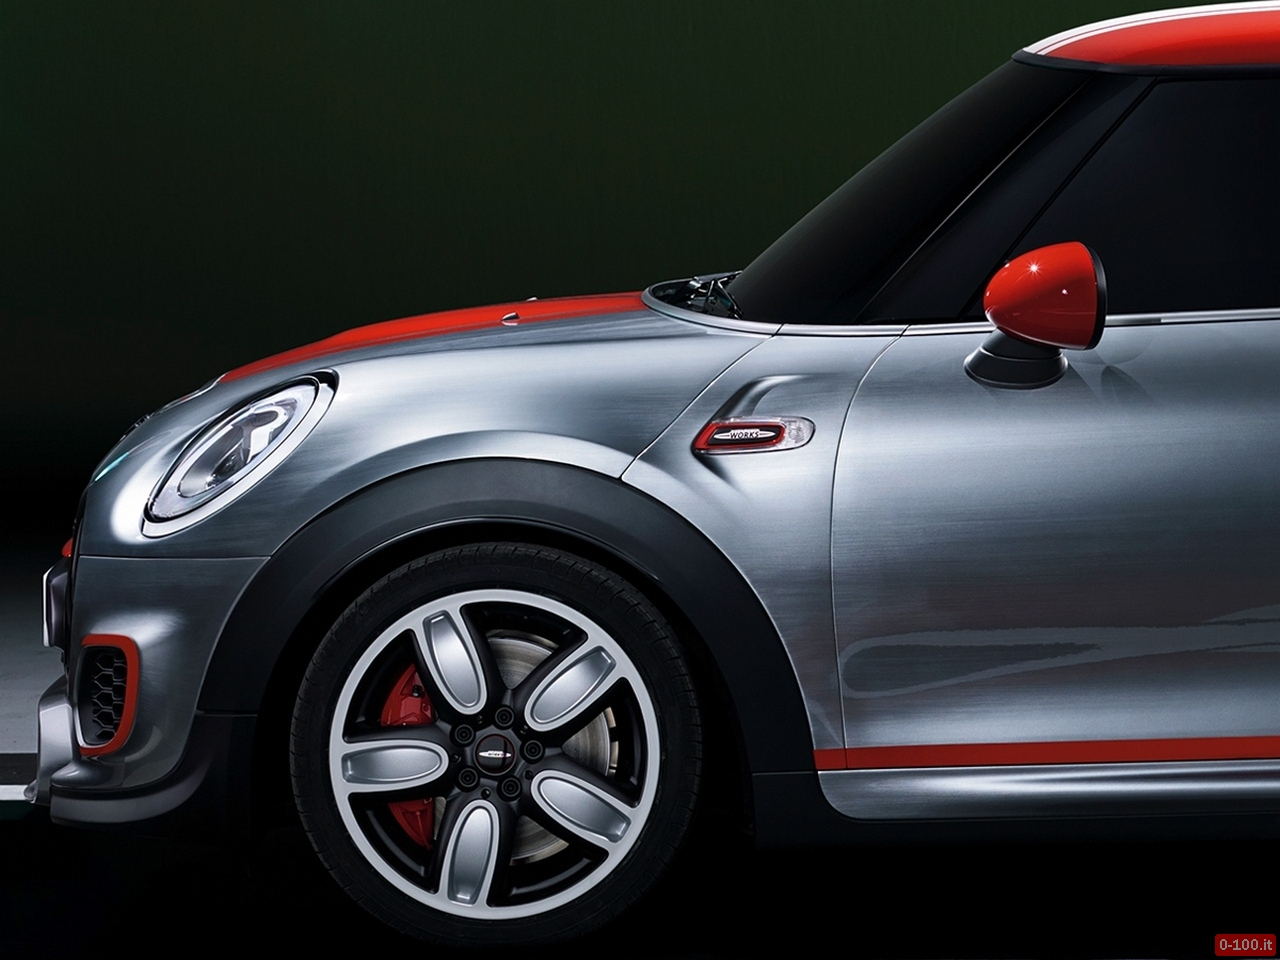 Salone-Detroit-NAIAS-2014-MINI-John-Cooper-Works-Concept_16